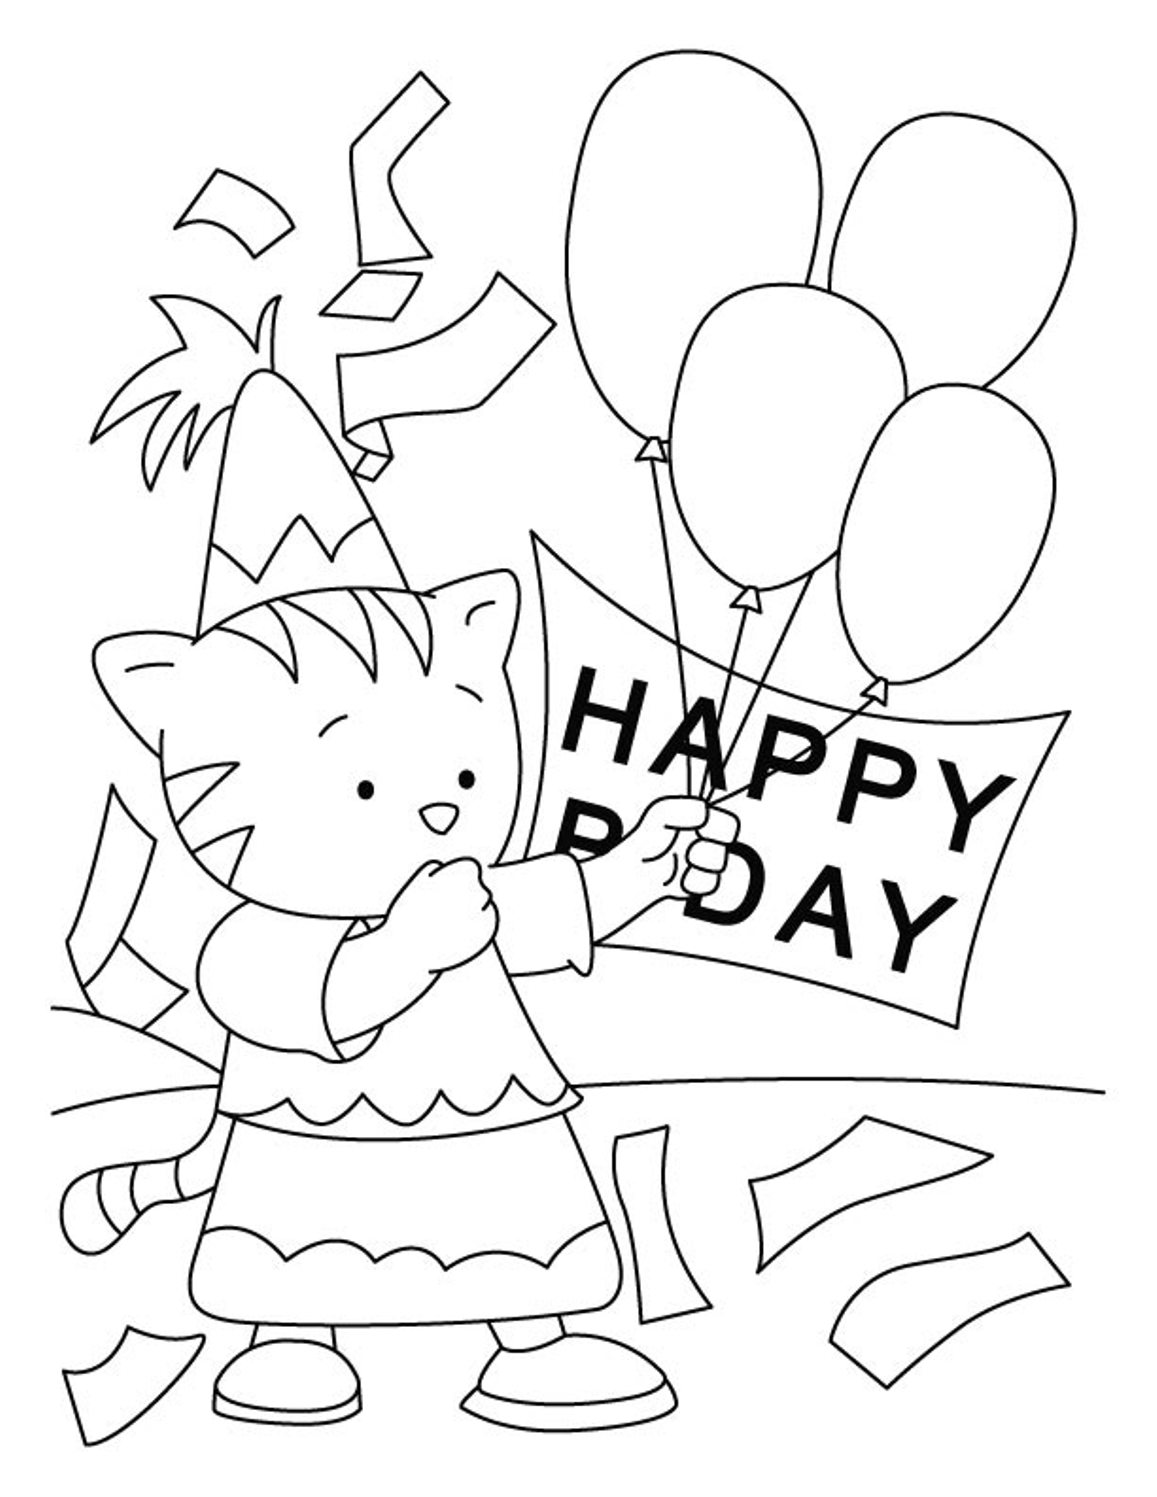 printable birthday activity sheets ; Happy-birthday-coloring-pages-free-printable-download-for-kids-animals-balloon-cake-bird-elmo-disney-activity-sheets-boy-girl-crafts-9